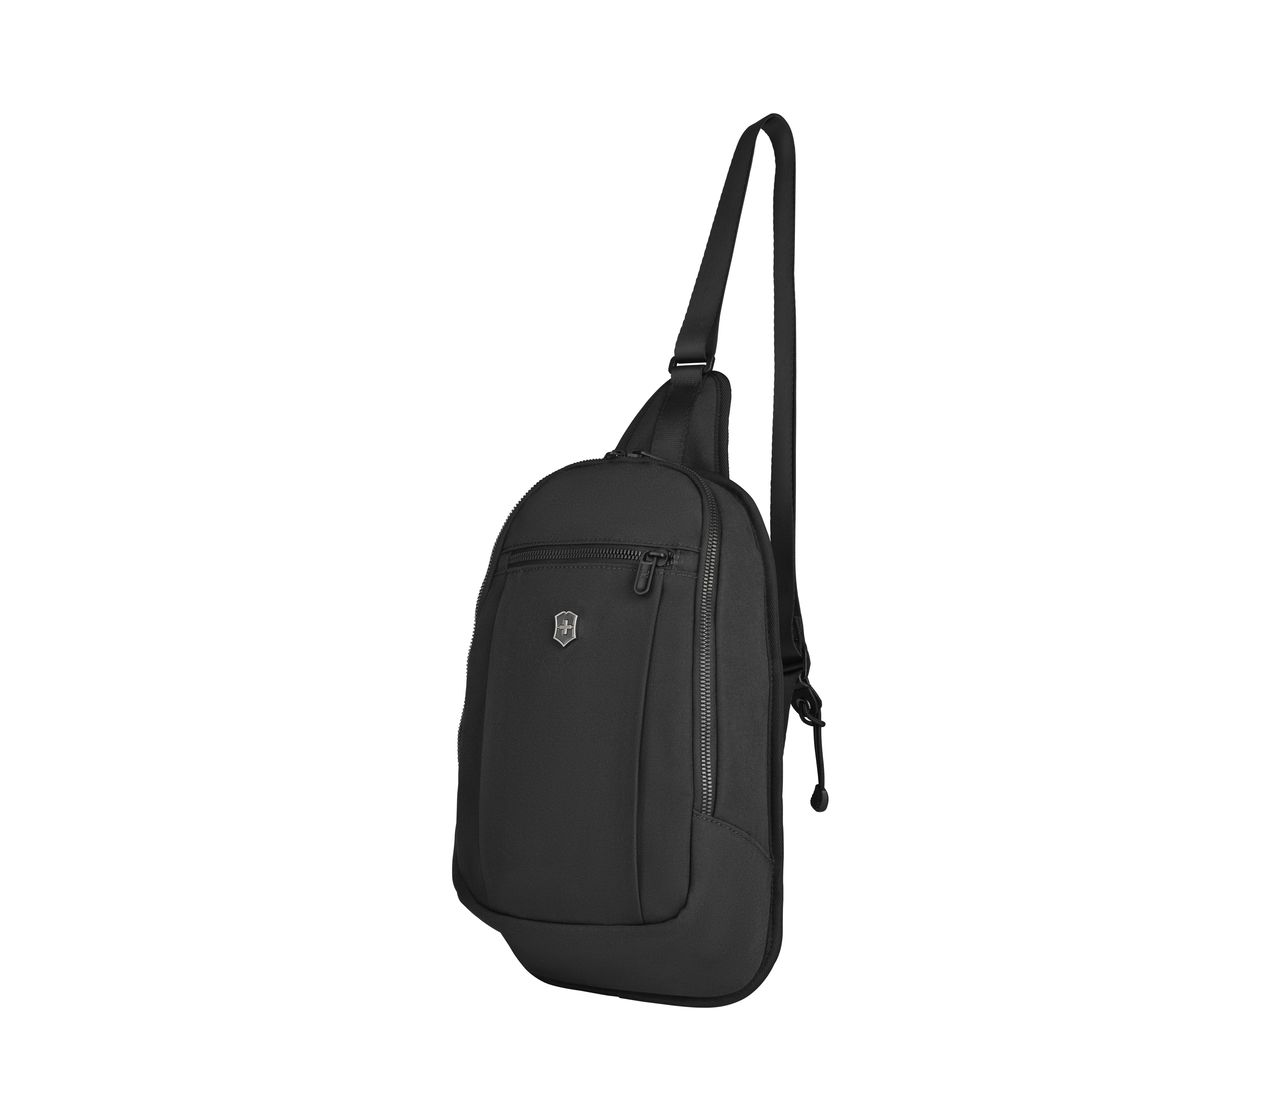 Victorinox Lifestyle Accessory Sling Bag In Black 607126